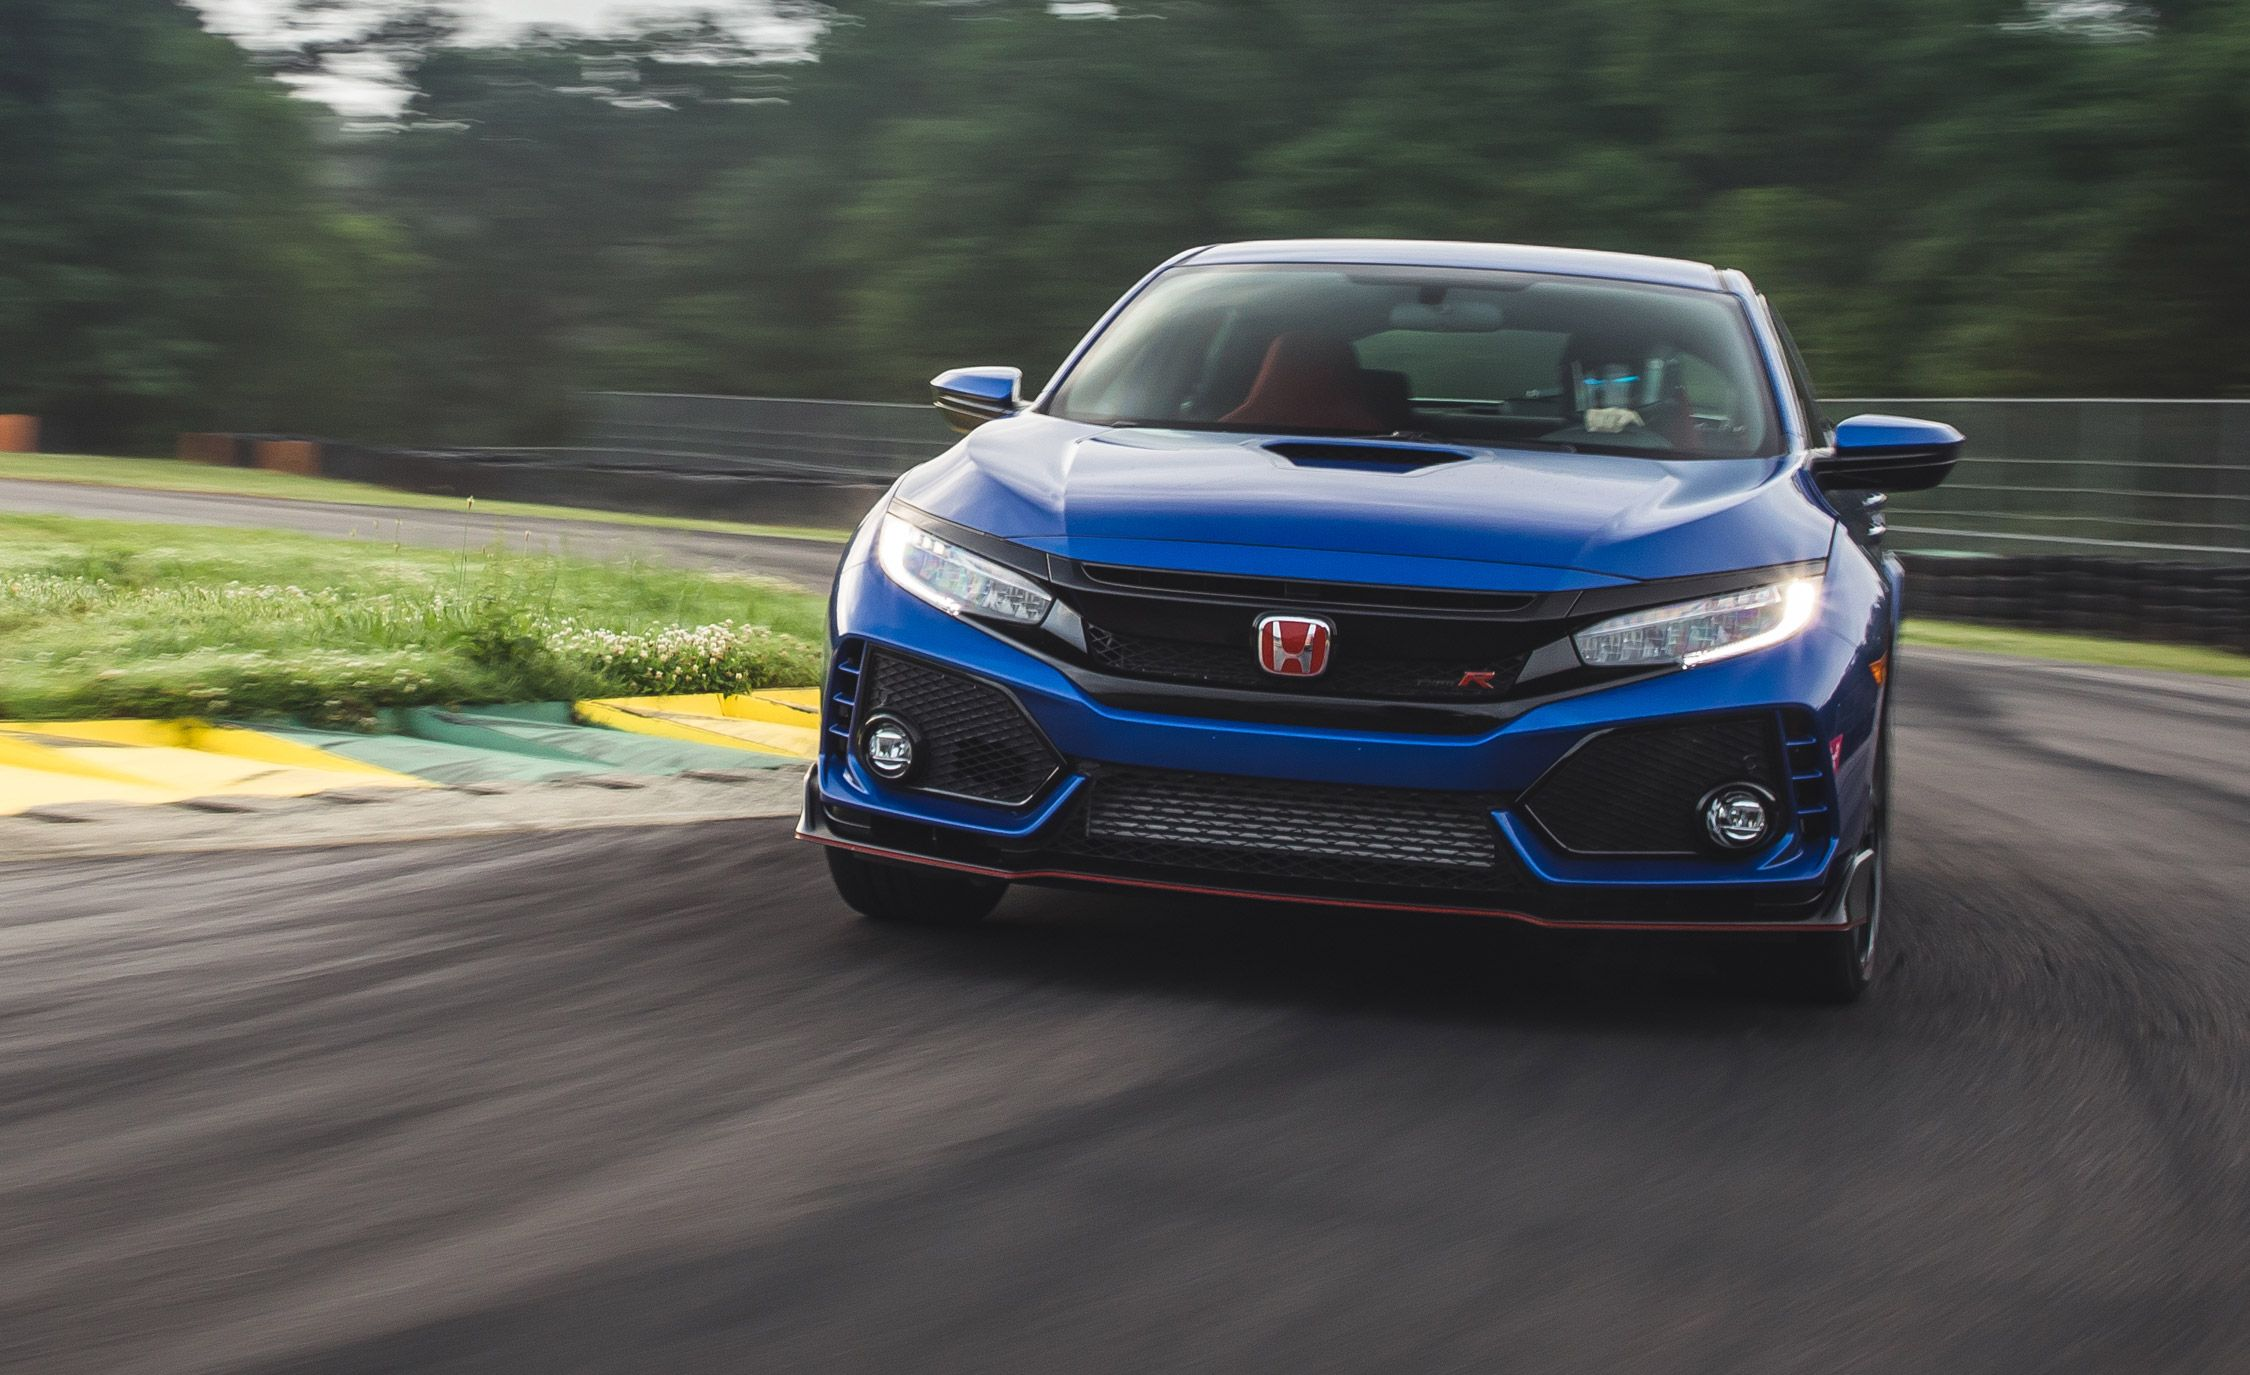 2019 Honda Civic Type R Reviews Honda Civic Type R Price Photos